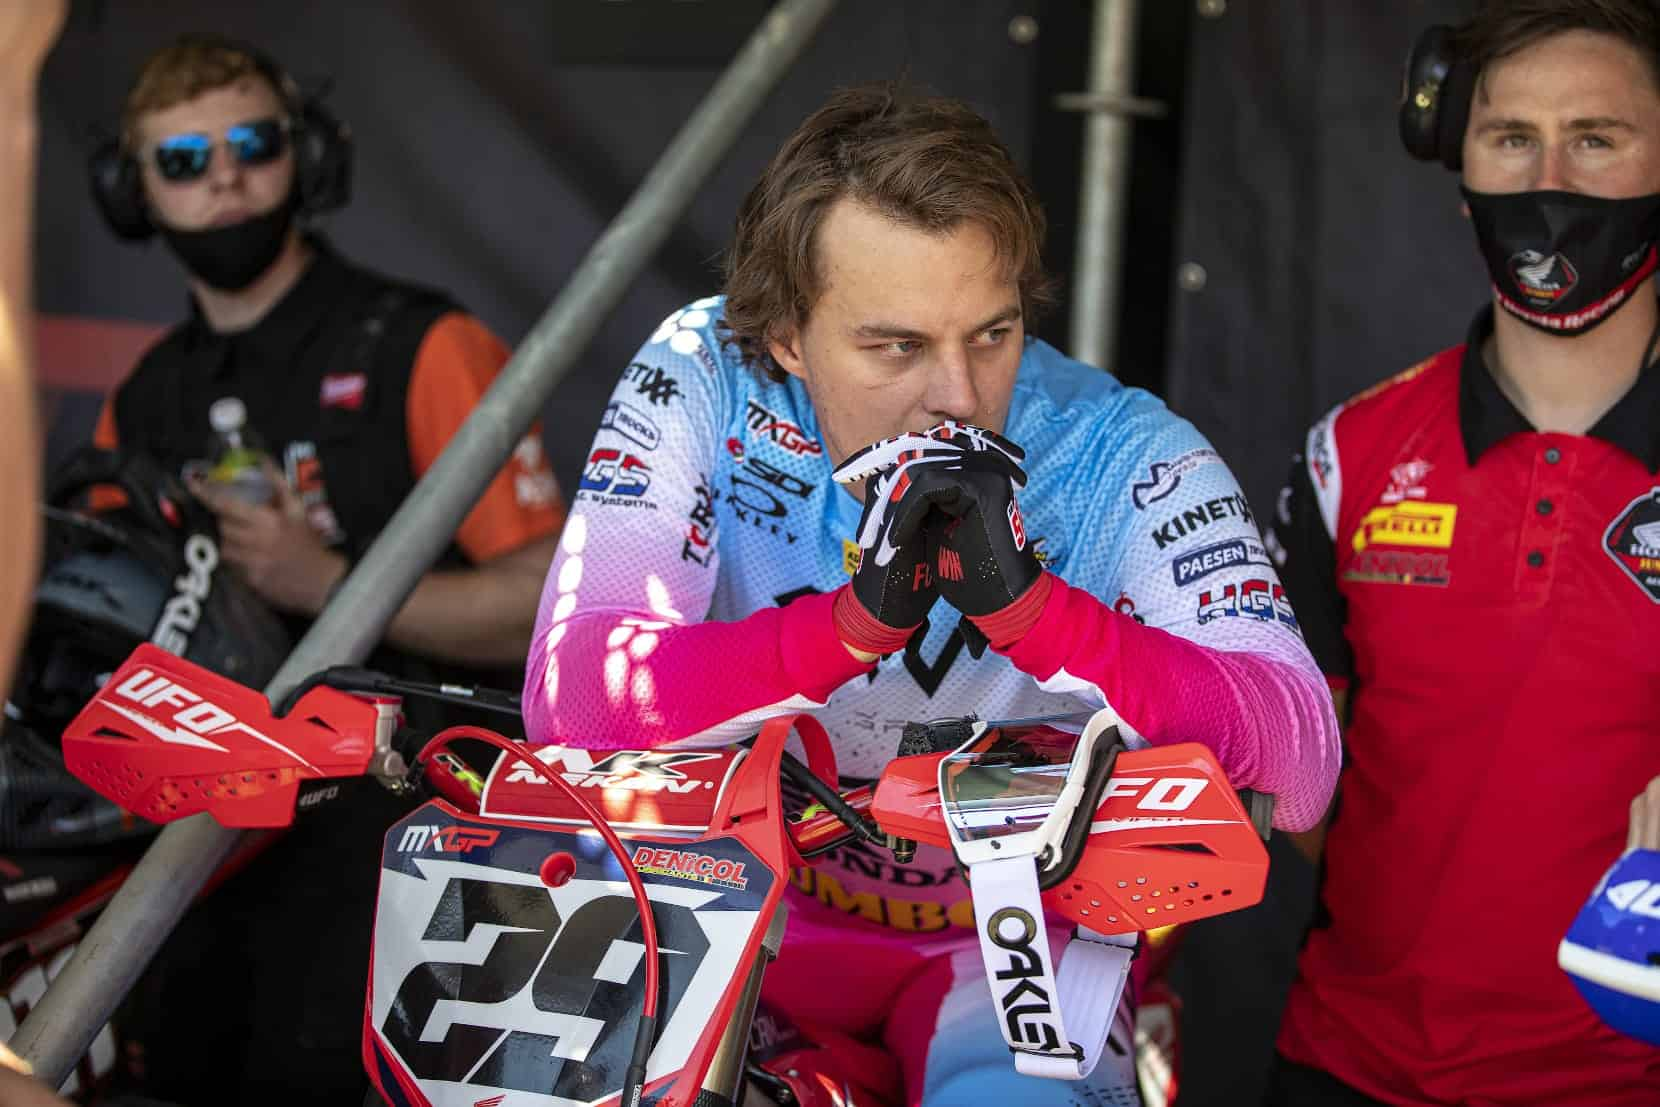 Henry beim MXGP of Russia